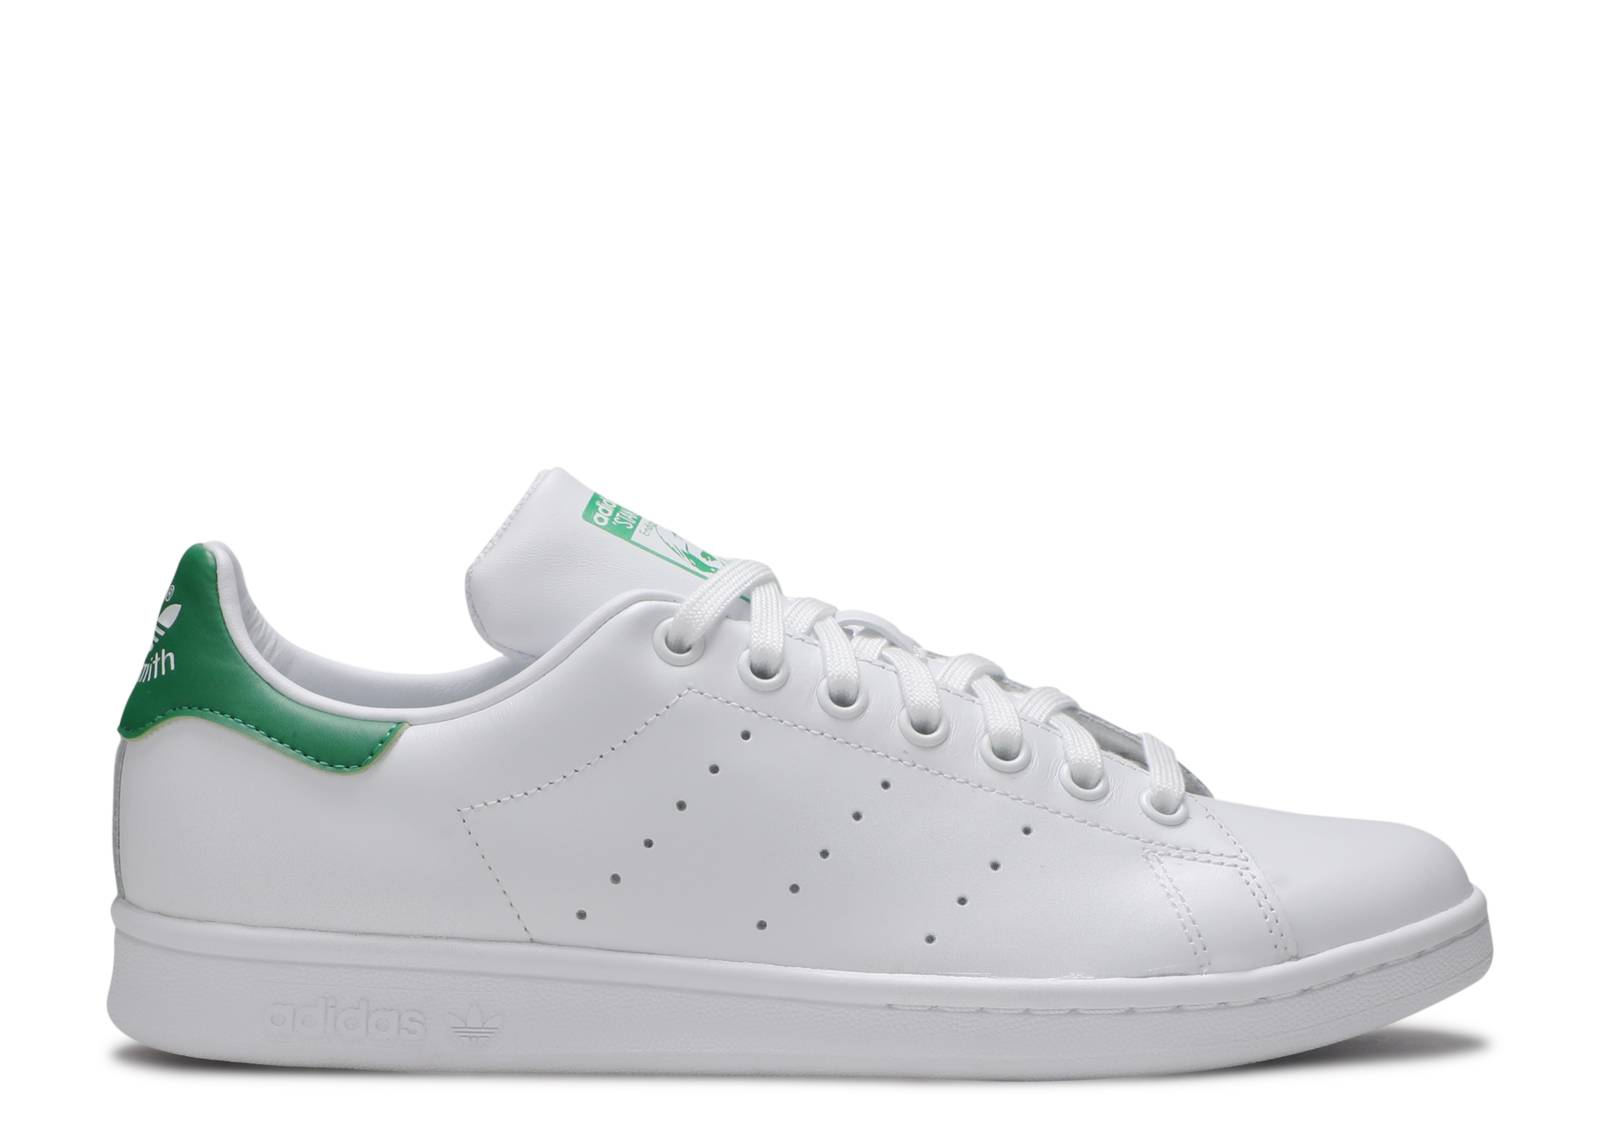 Stan Smith Adidas m ftwwht cwhite green